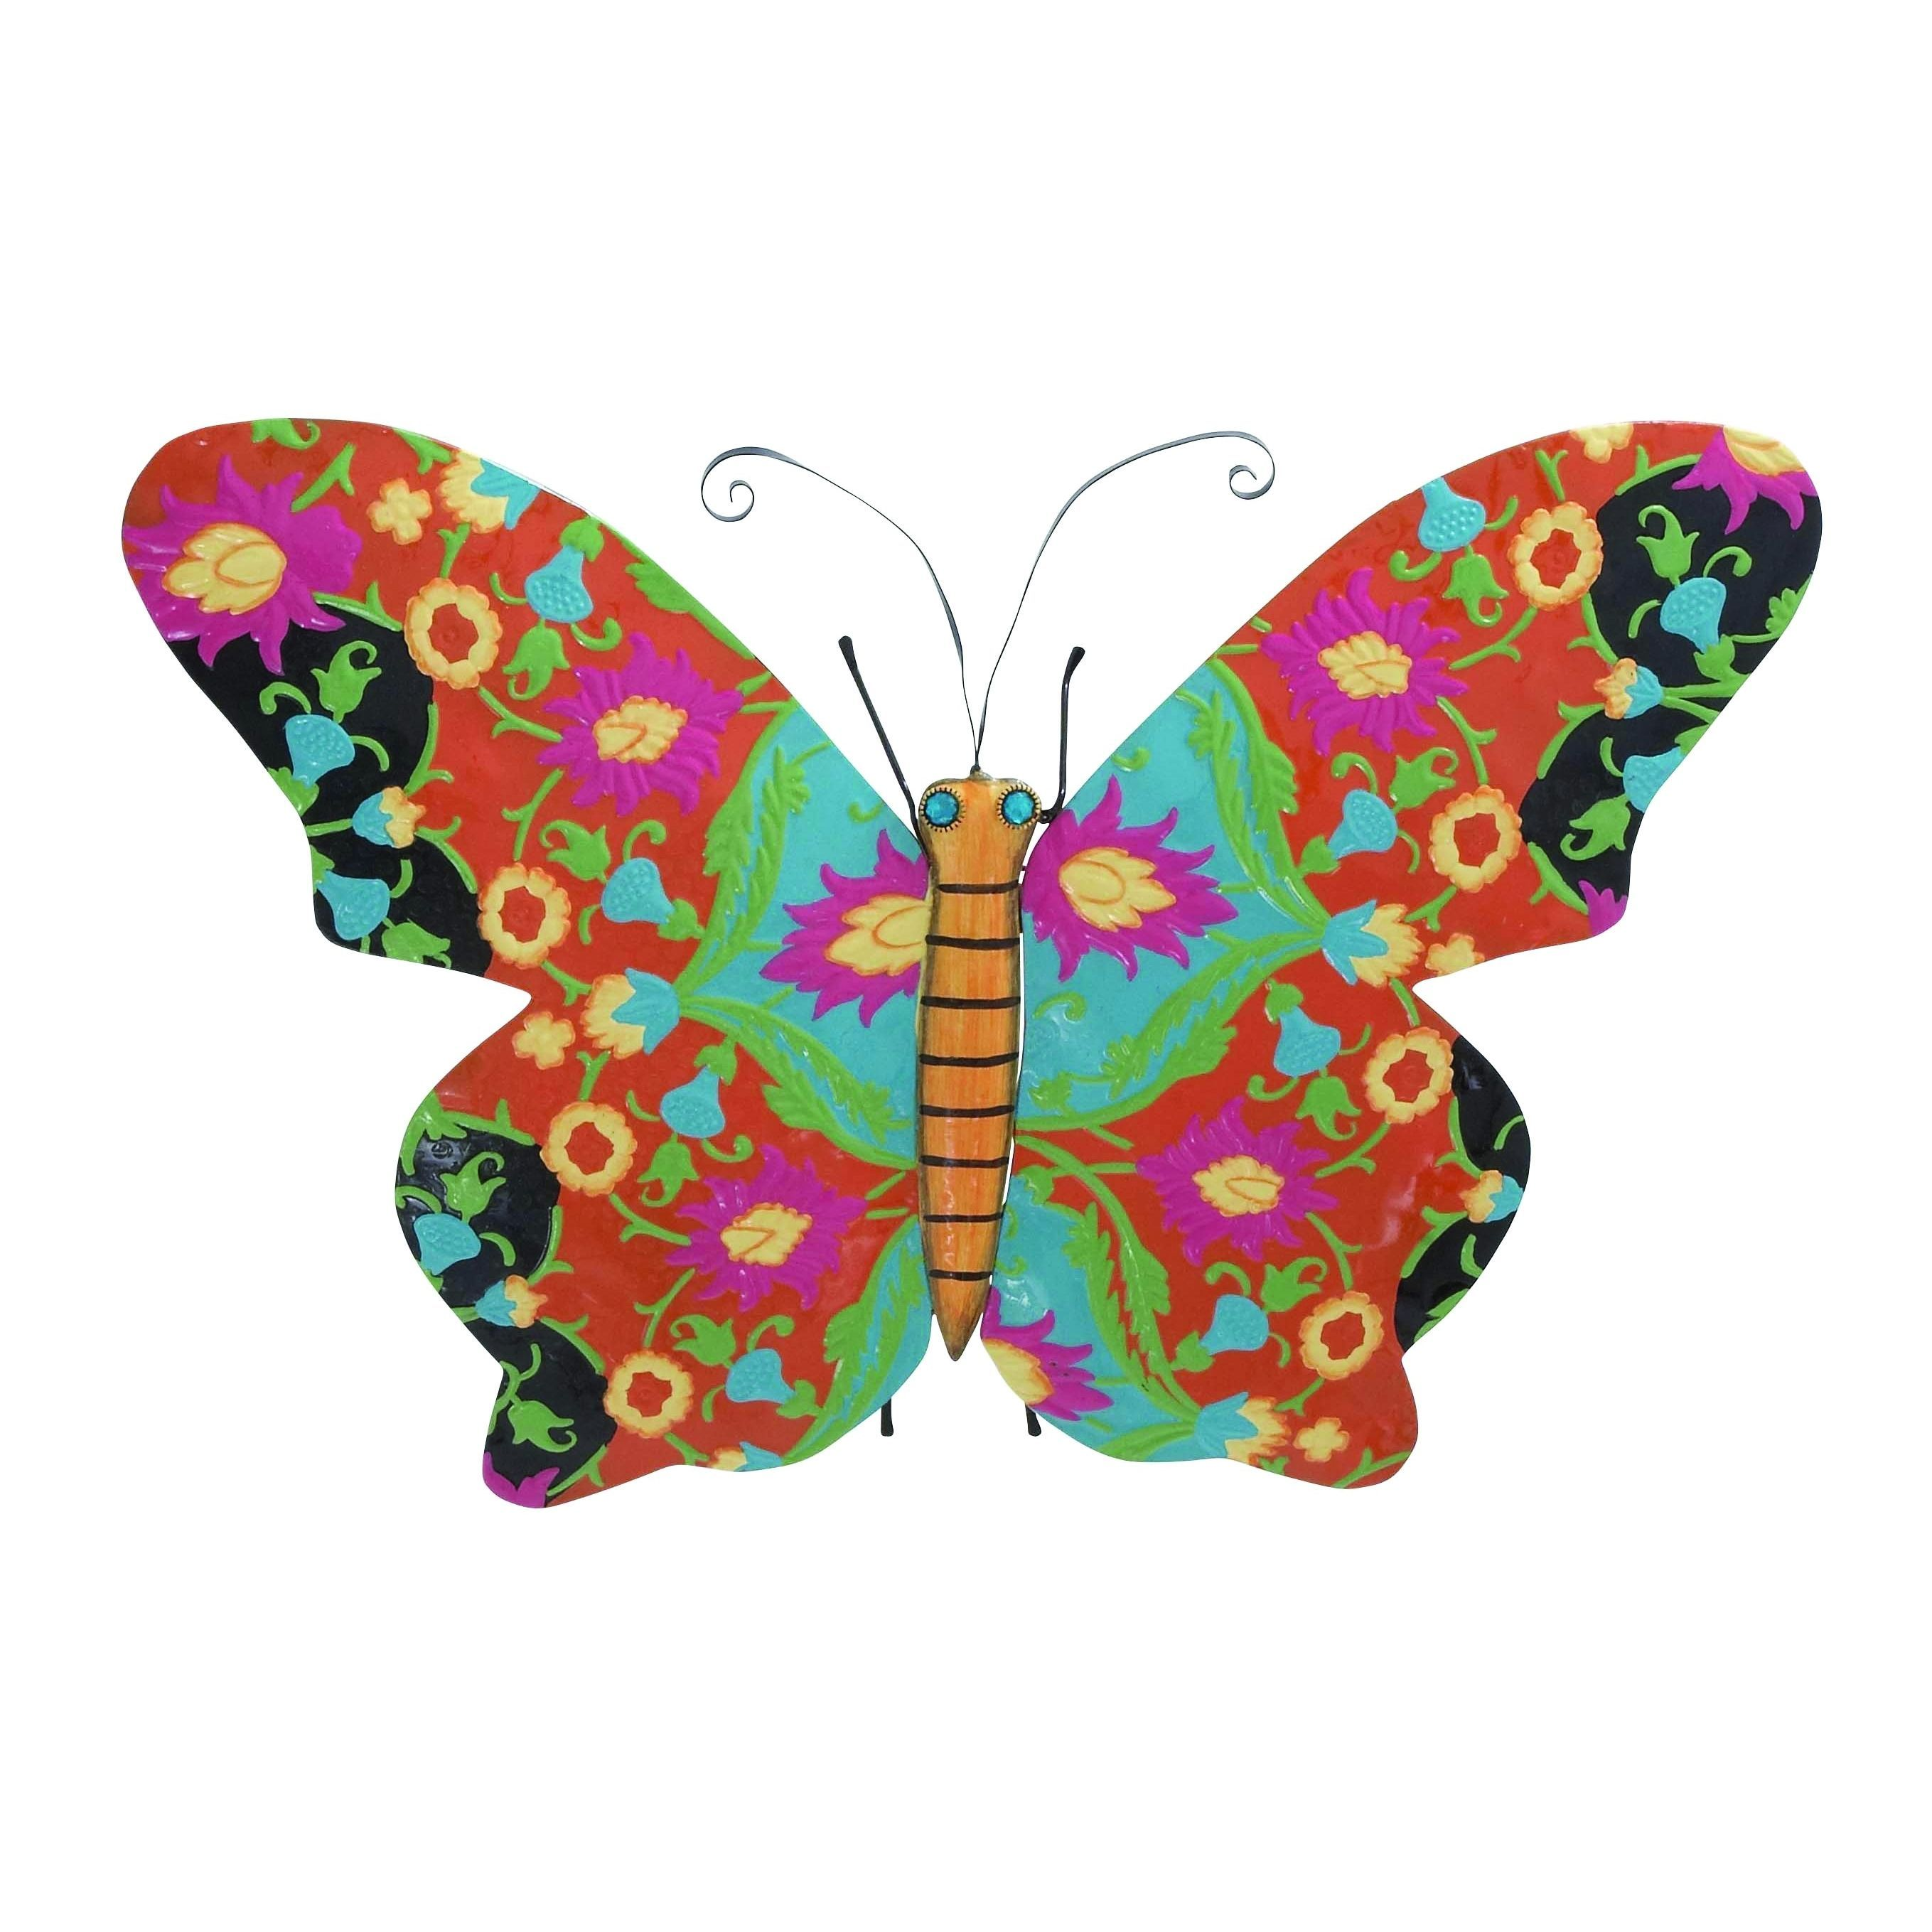 Metal Butterfly Shaped Decor With Texture And Rich Design · Natural TextureHome  Decor AccessoriesFloral ...